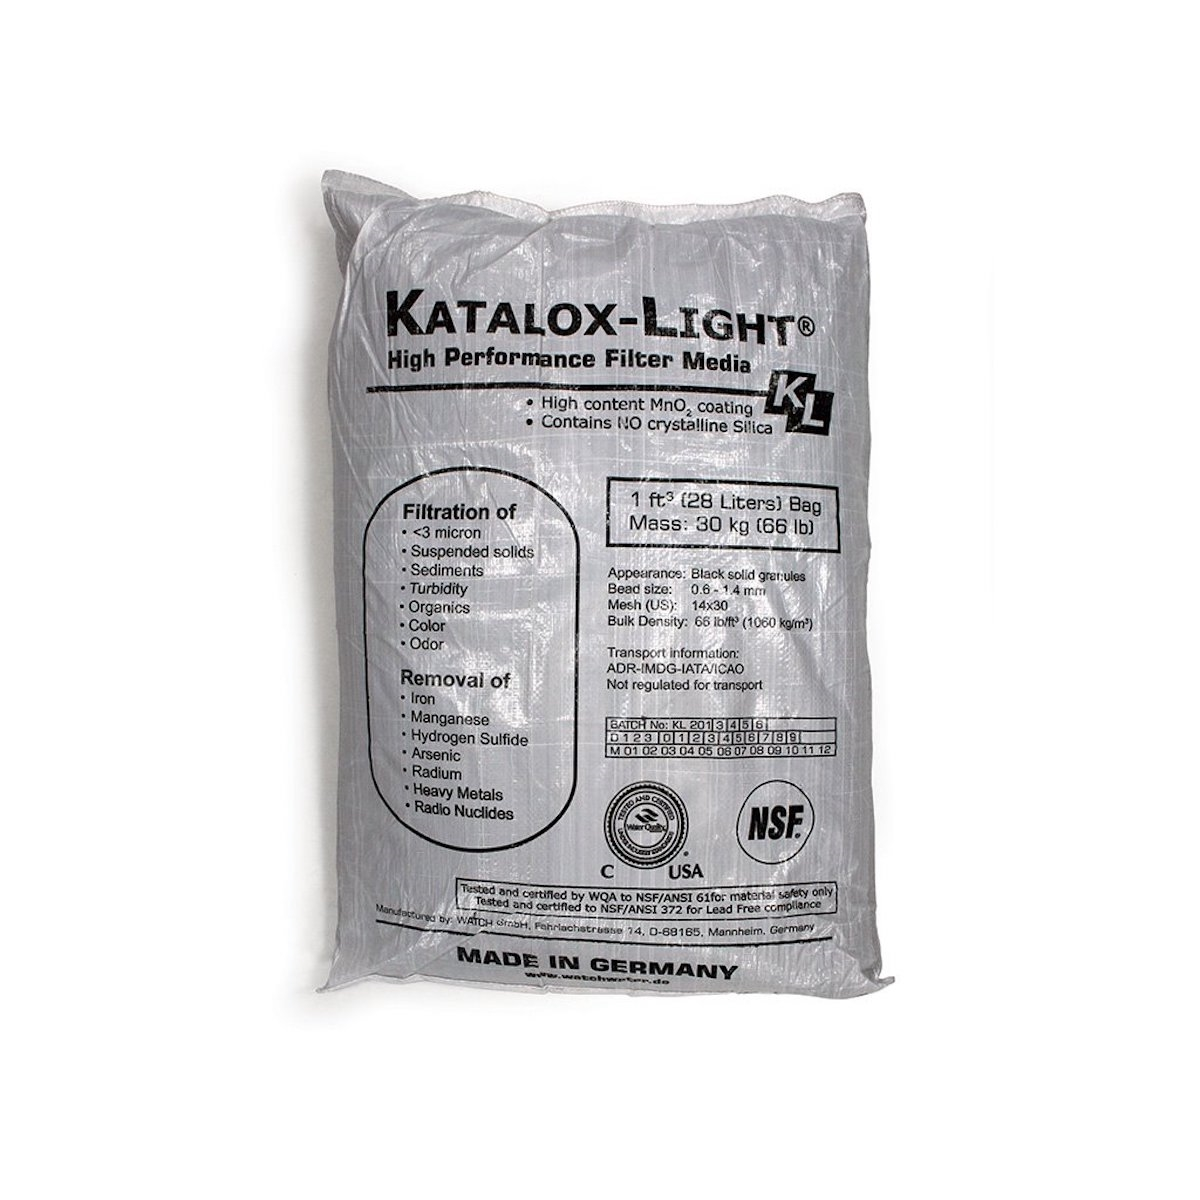 Katalox Light Filter Media 1 Cubic Foot Bag